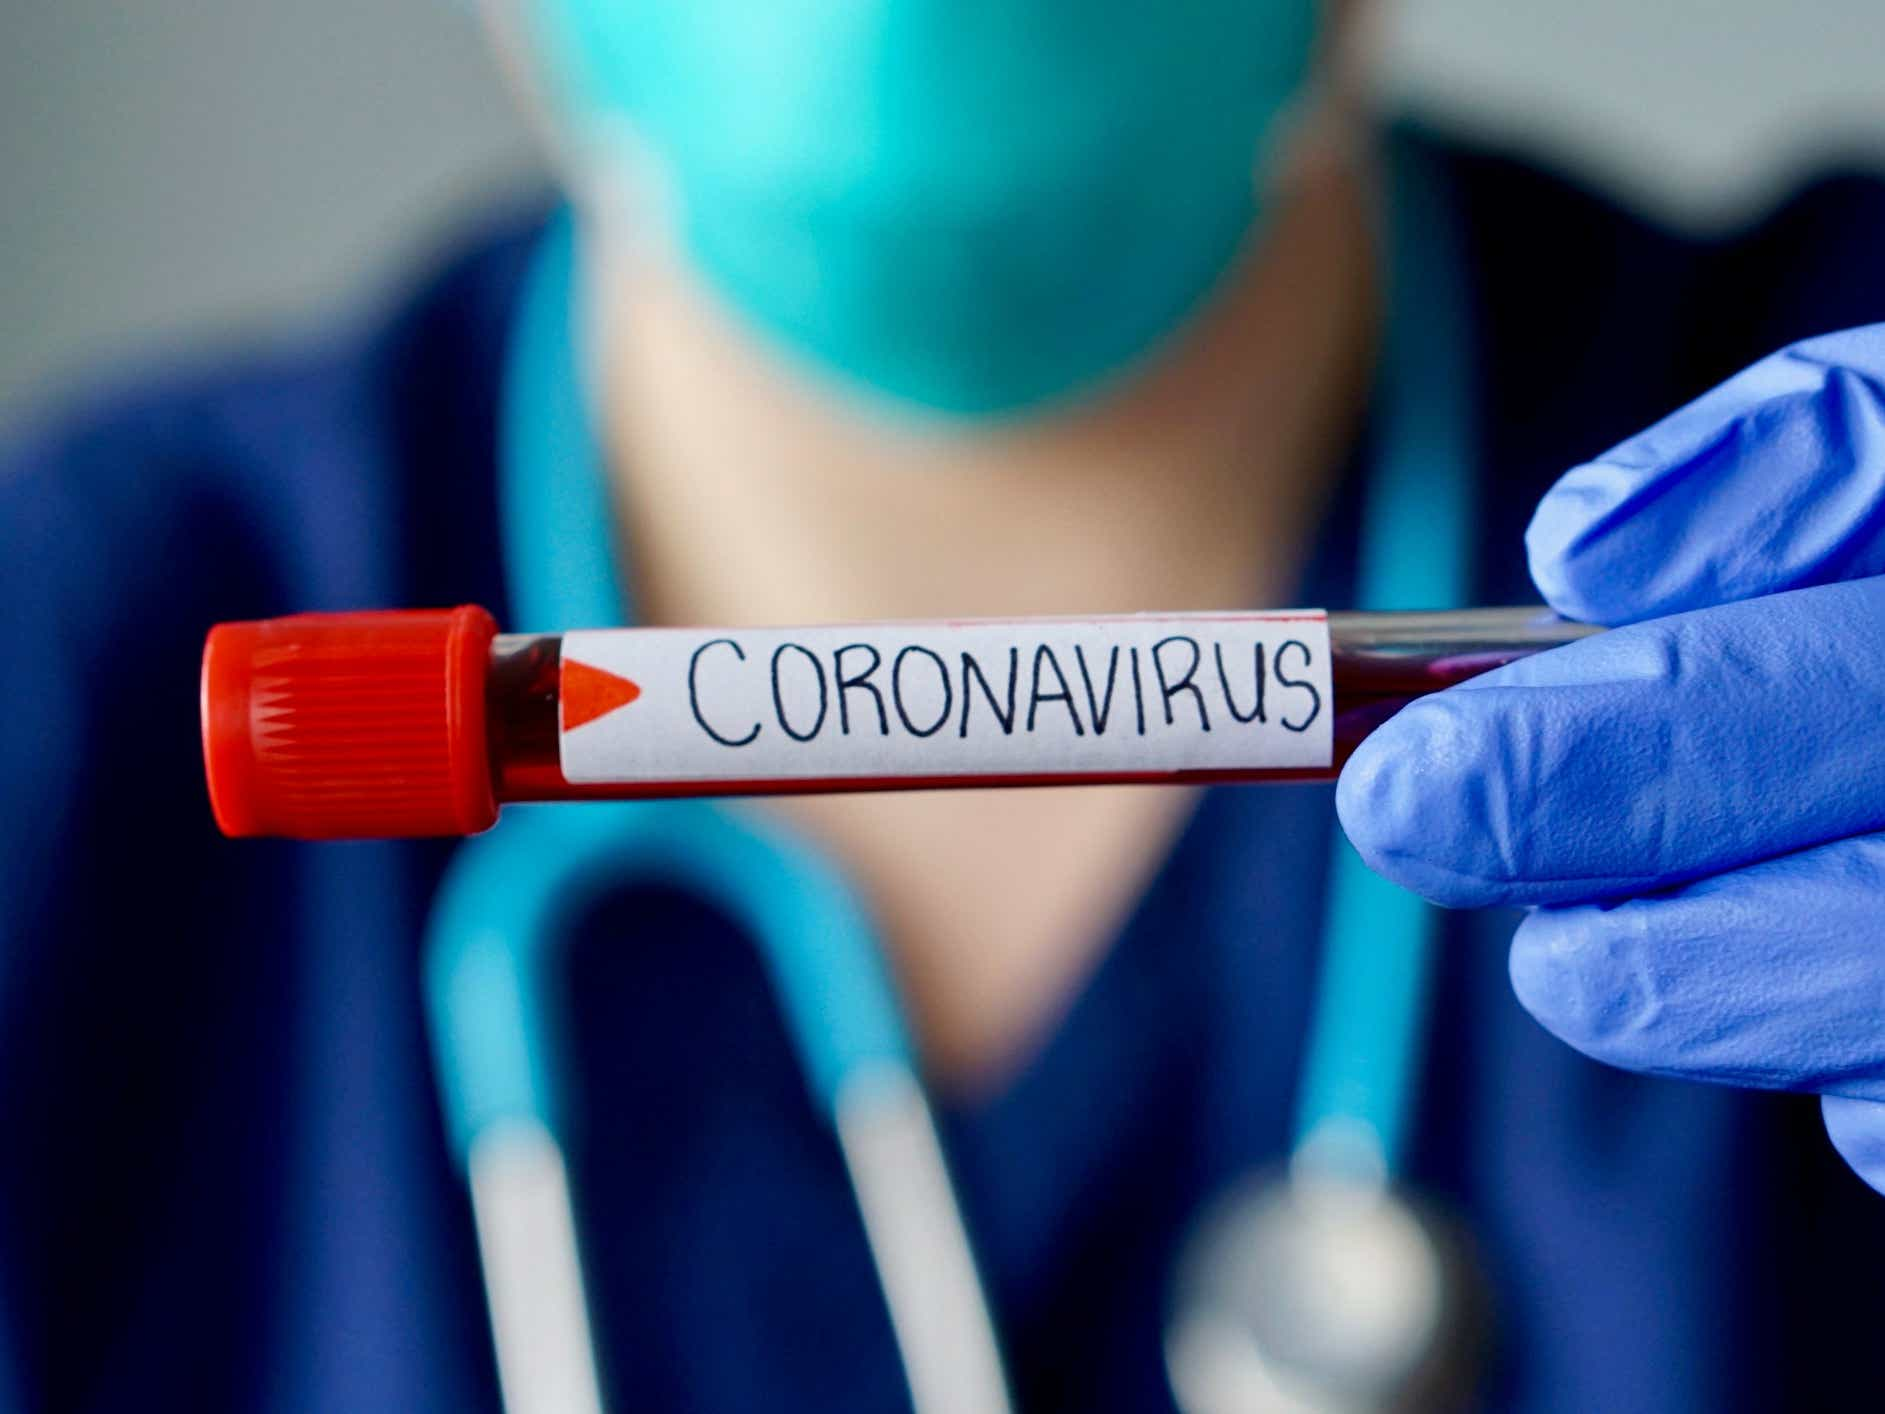 Study on COVID-19 Mortality Rate